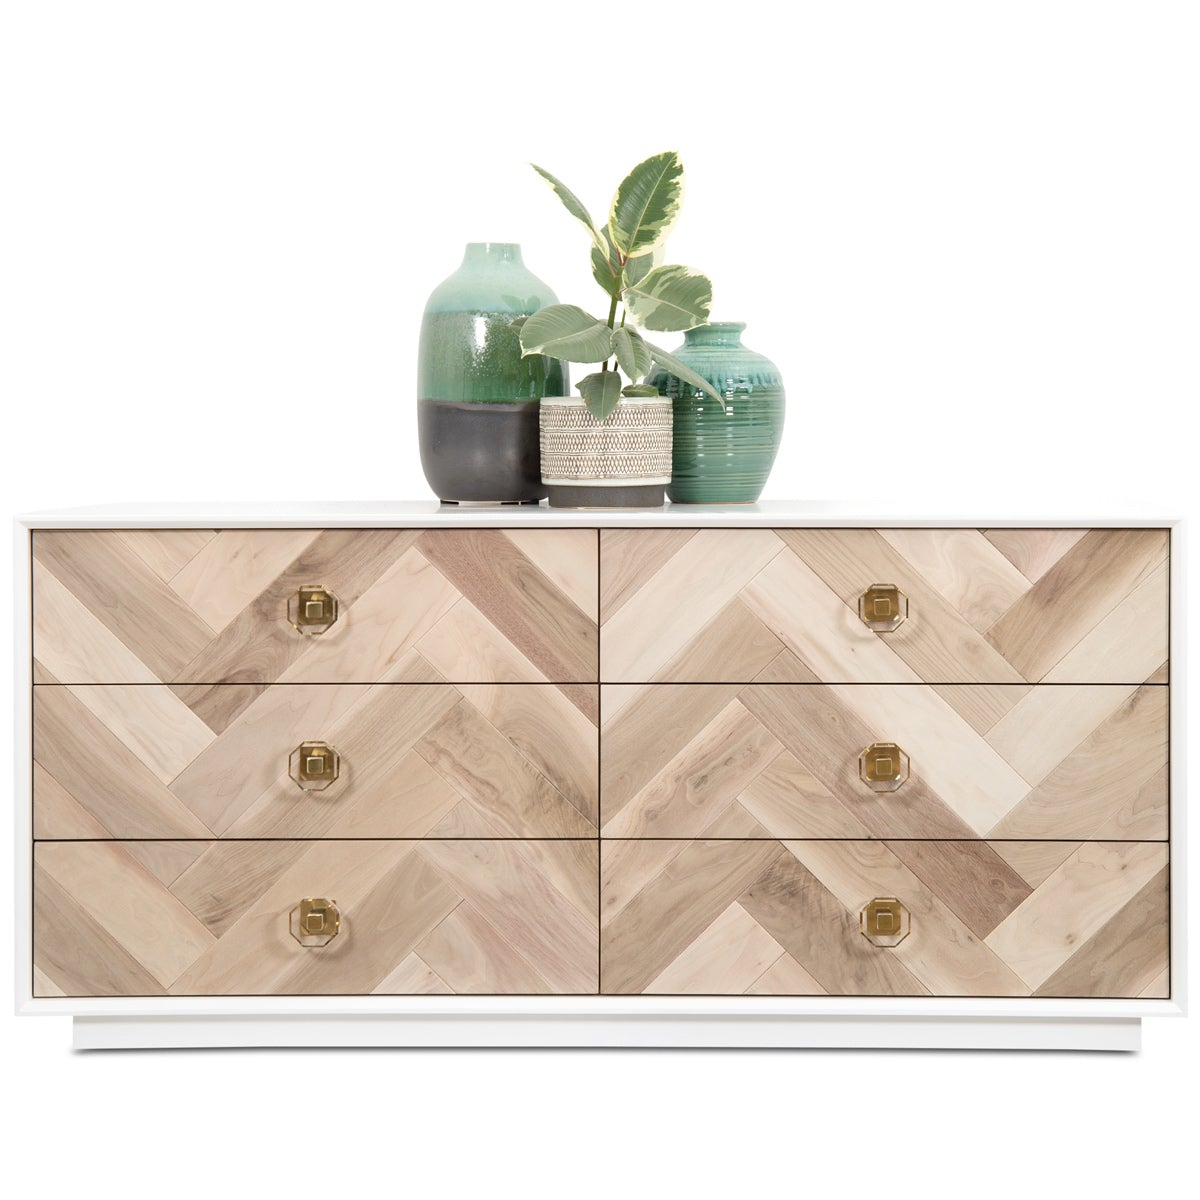 Six-drawer dresser with a white pedestal base, a wood plank chevron facade, brass and acrylic drawer pulls and an arrangement of two green vases and a plant centered on the top.